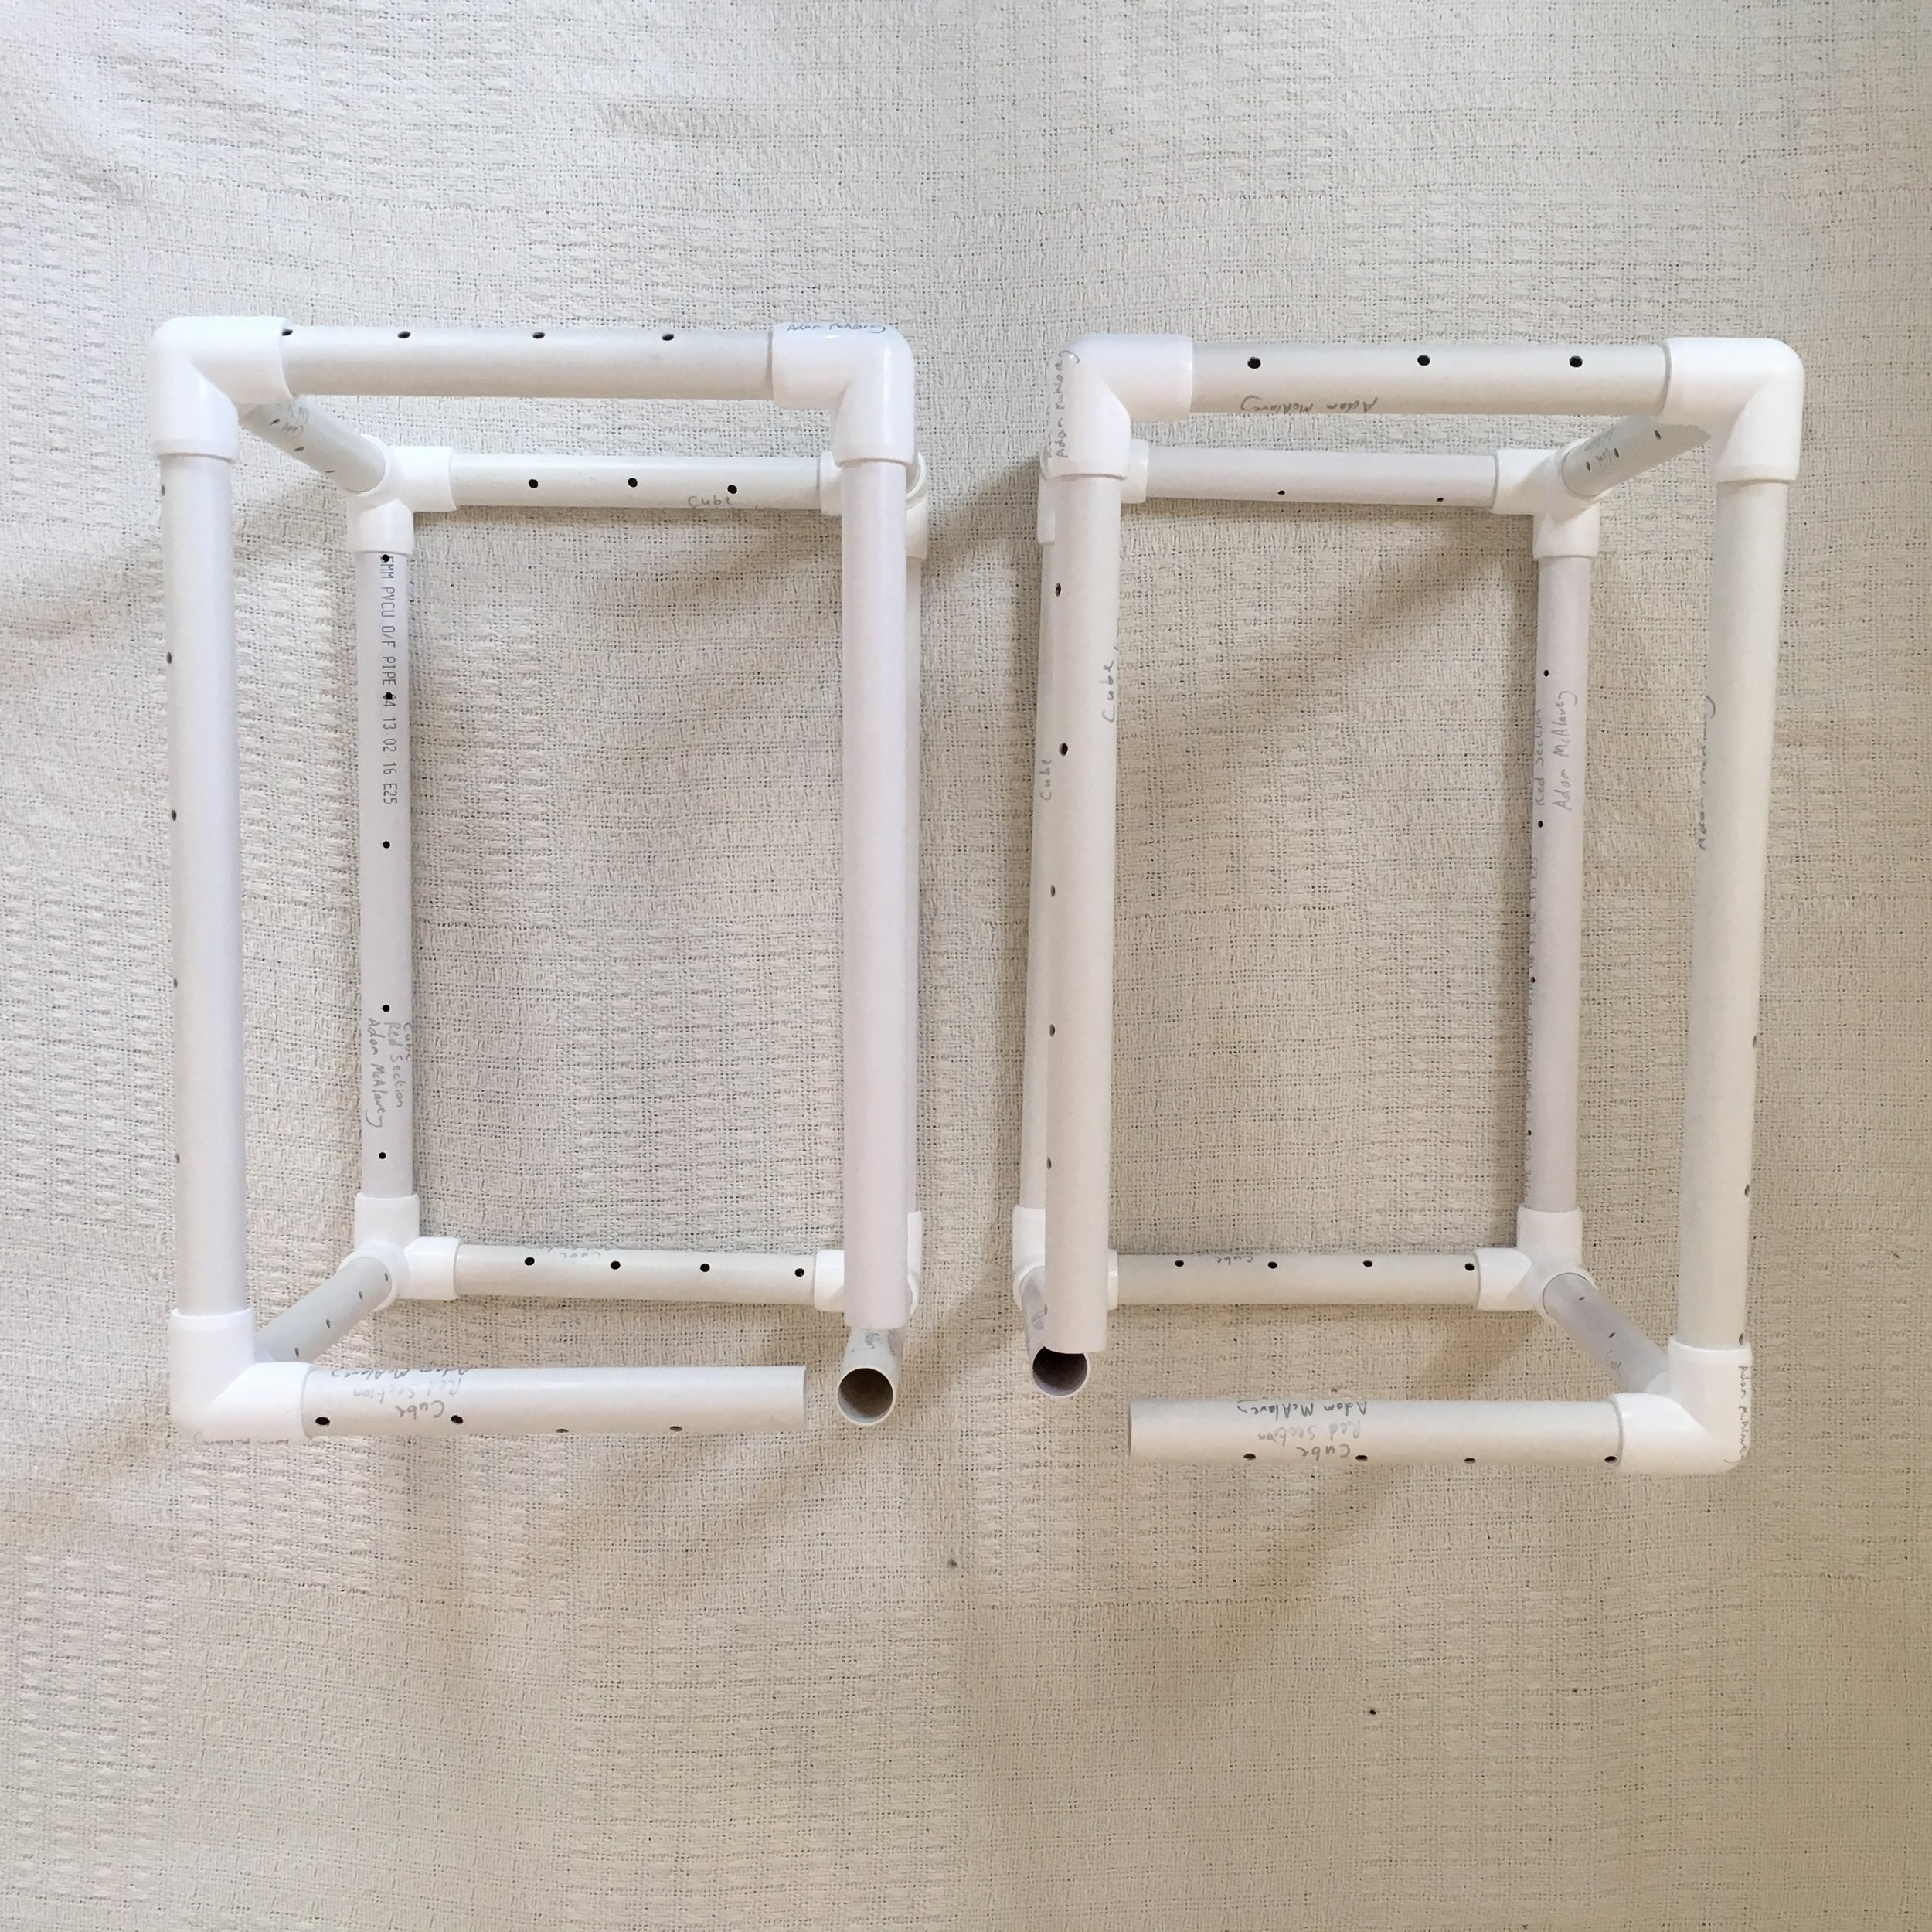 Frames For The Leg Cubes